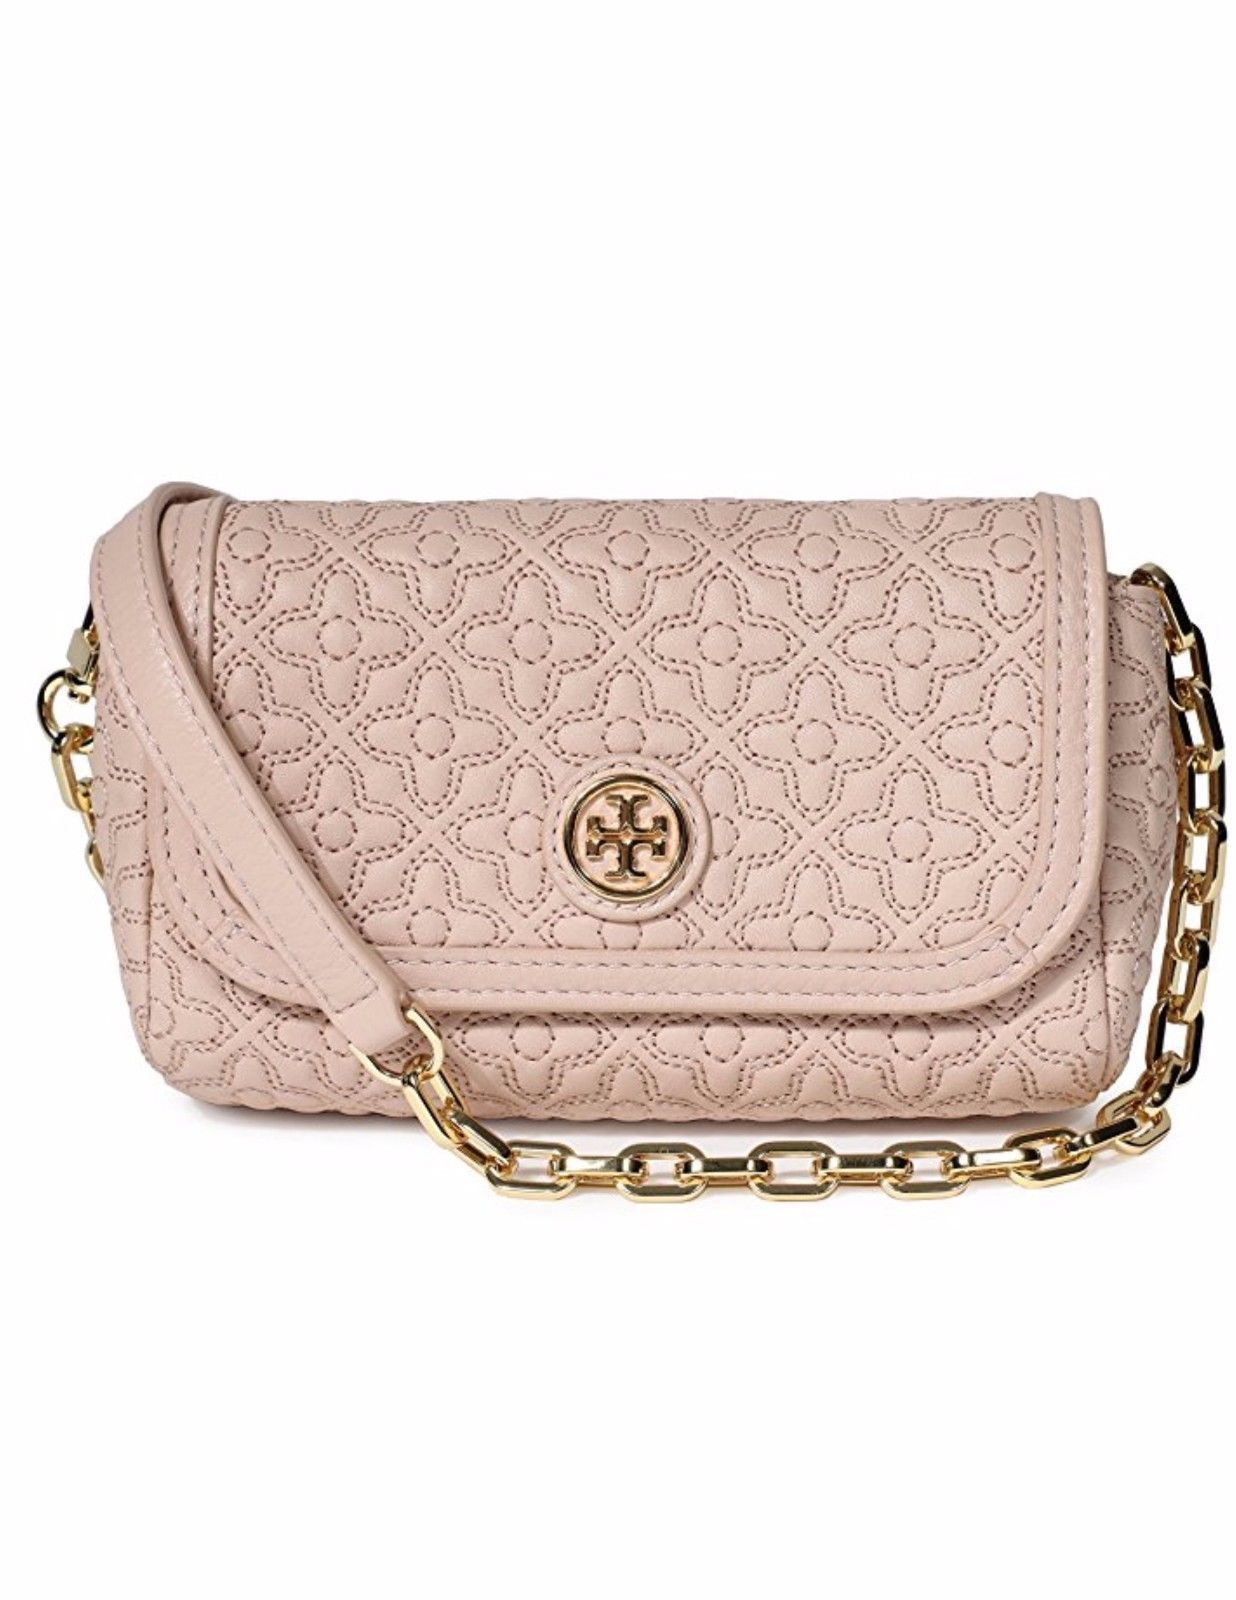 d0793f6bbb NWT Authentic Tory Burch Bryant Quilted Small Leather Crossbody Bag $ 250